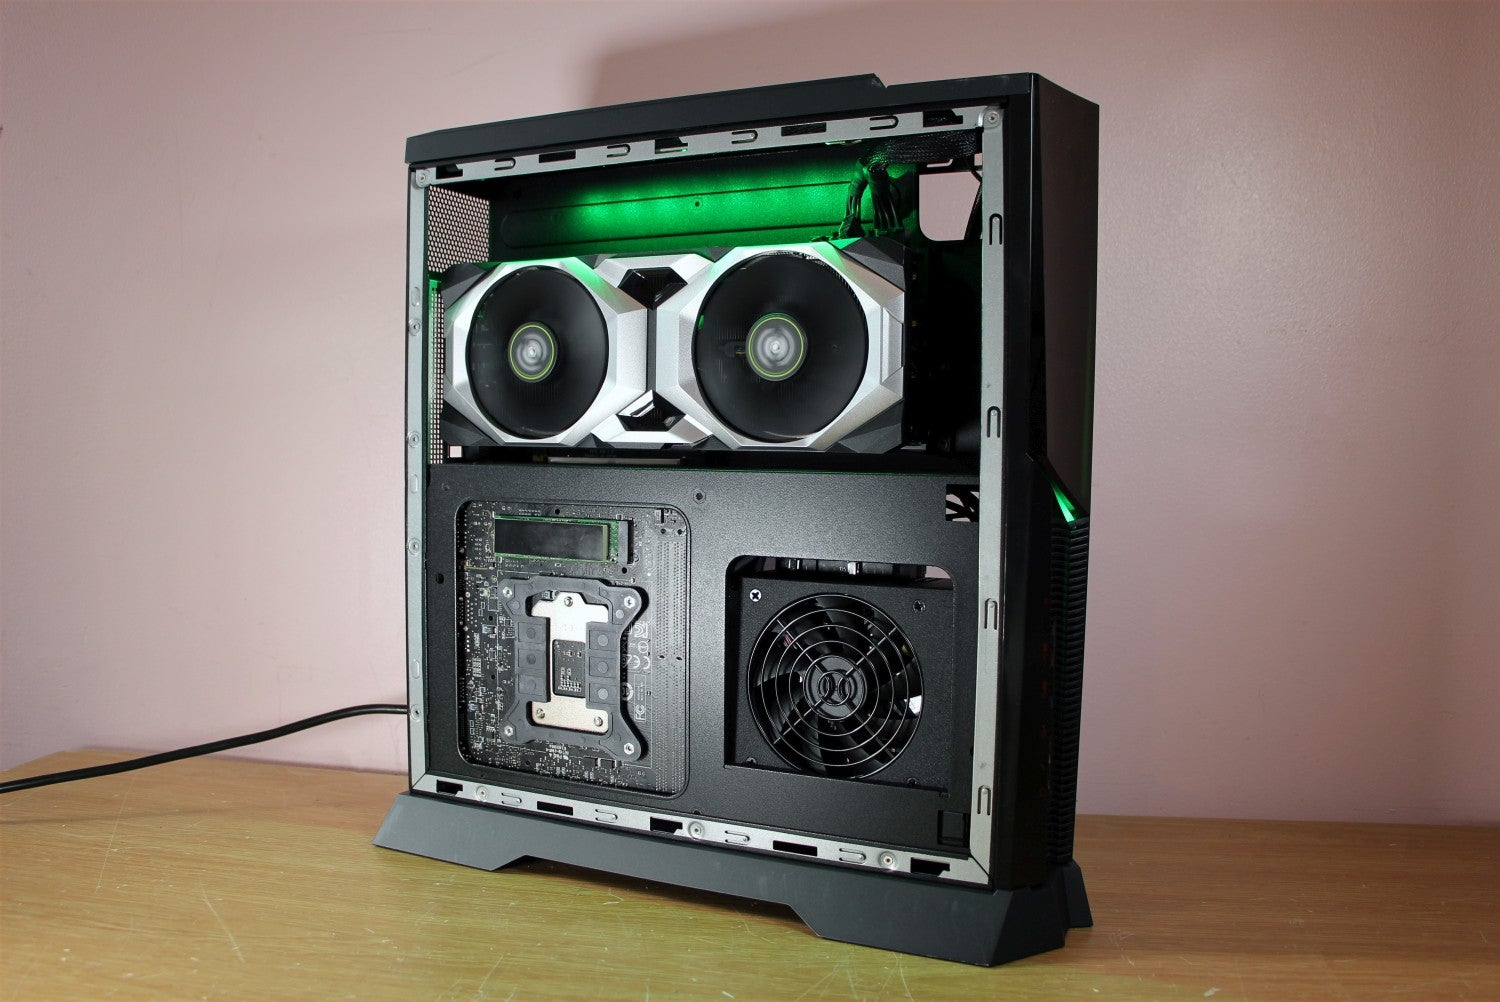 MSI Trident X review 03